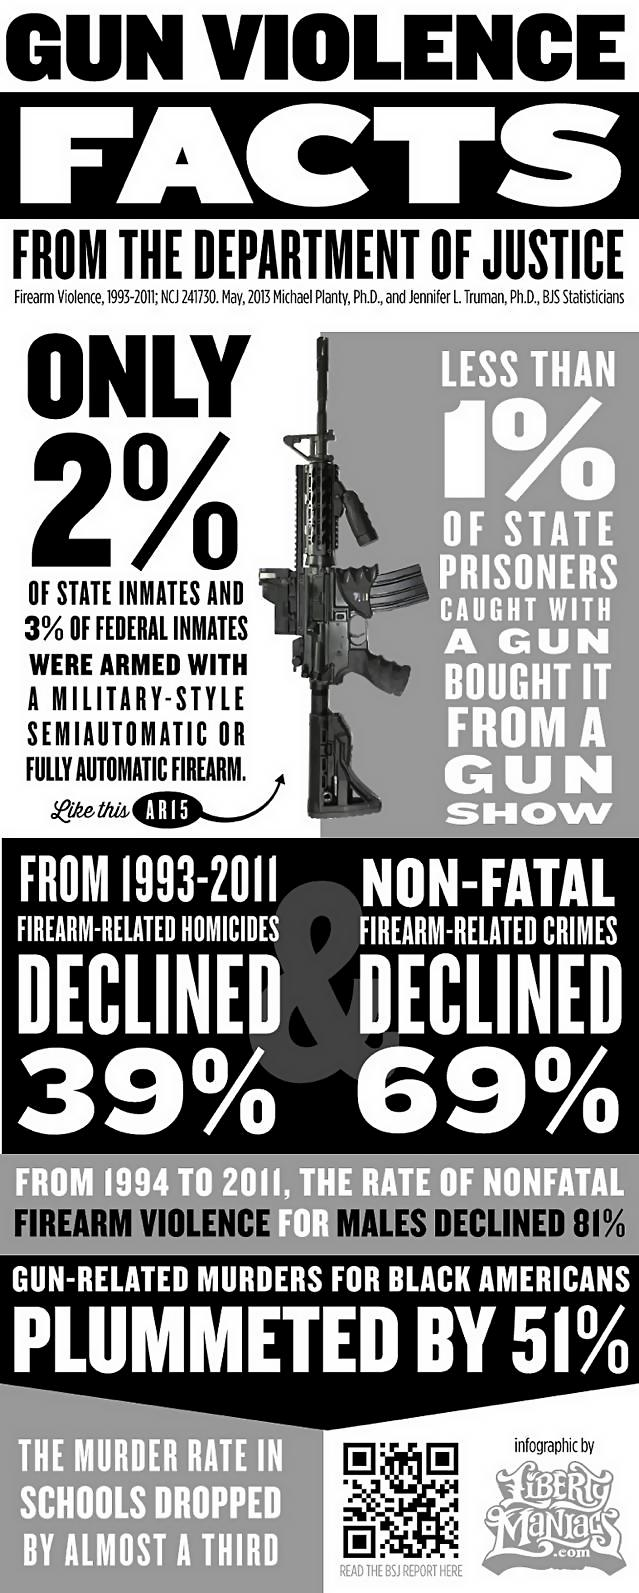 Facts-About-Gun-Violence.png